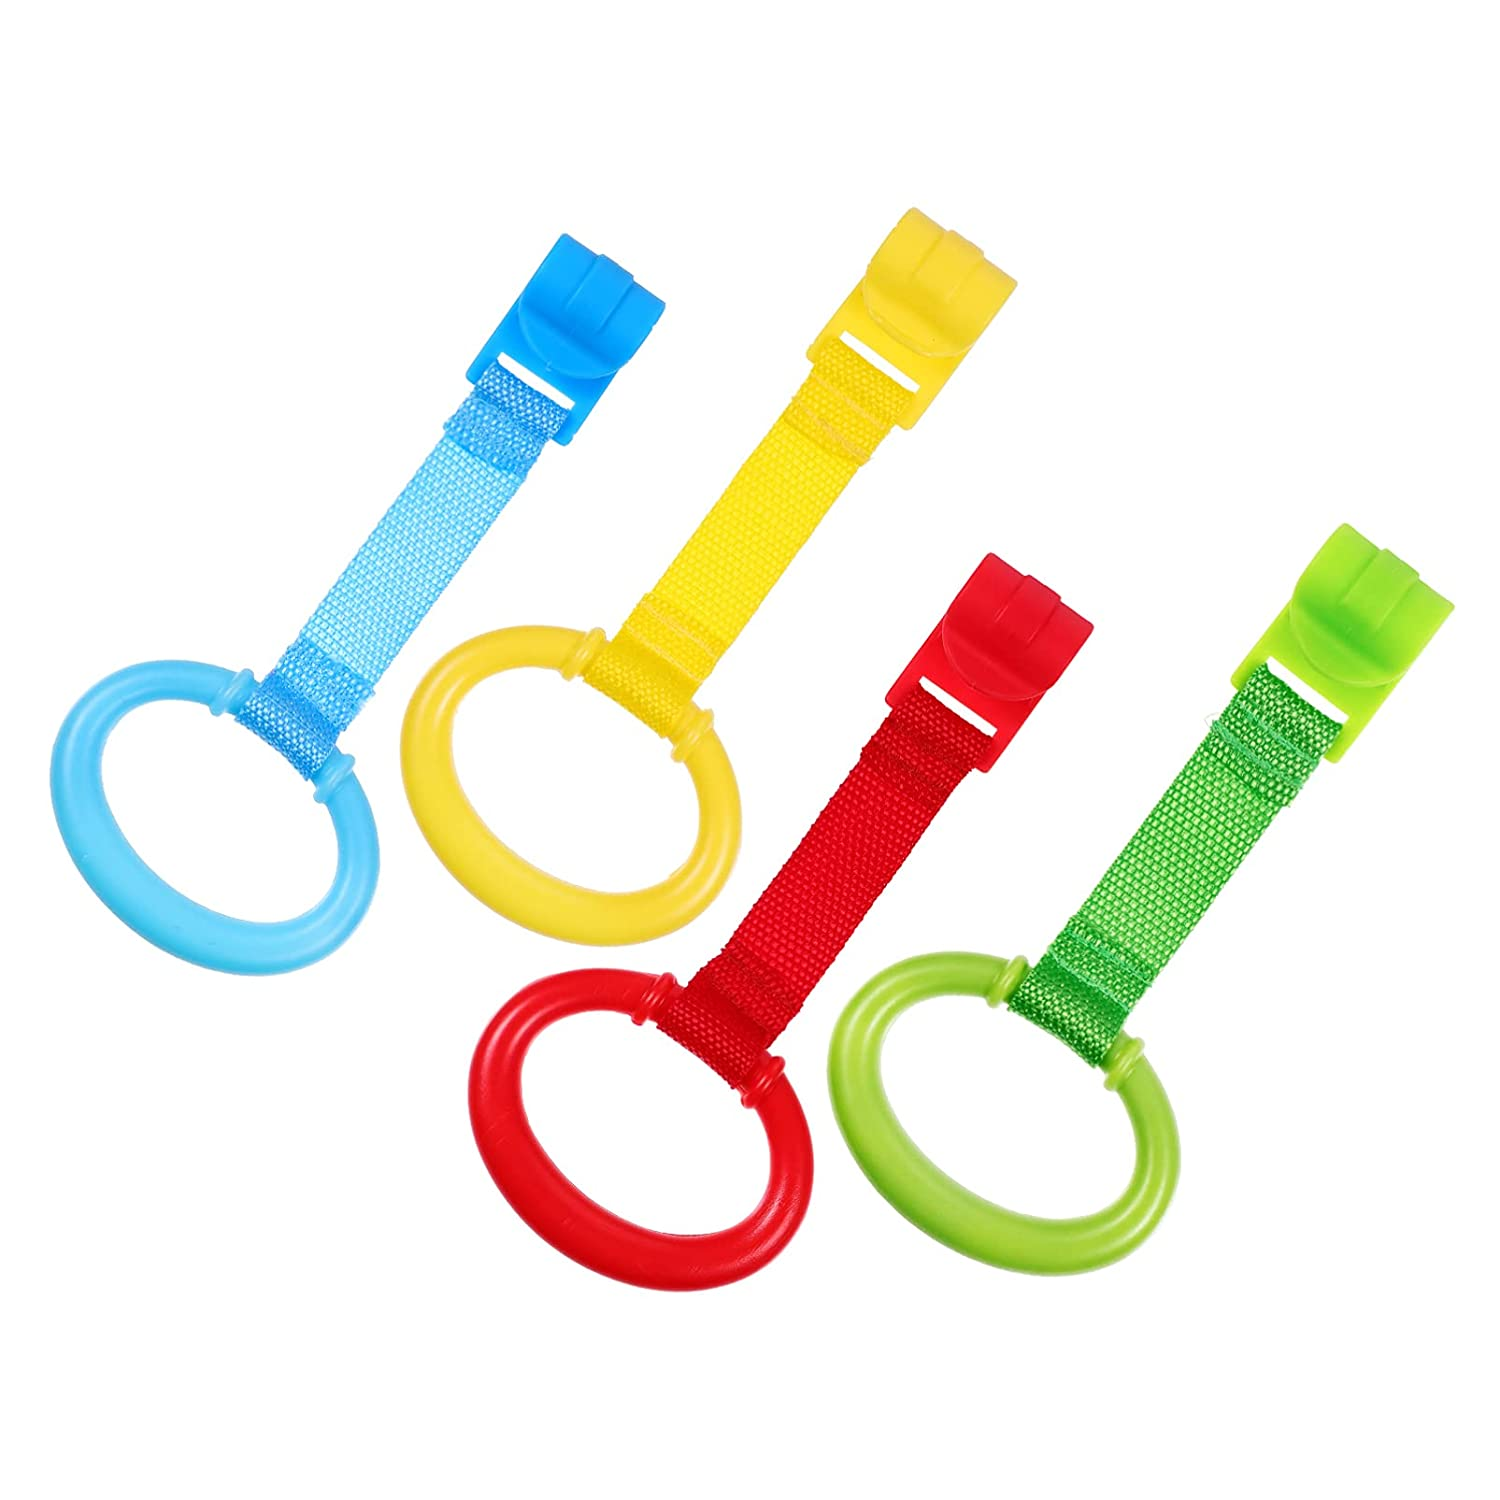 NUOBESTY Baby Crib Pull Ring Walking Assistant Pull Up Ring Bed Stand Up Rings for Kids Walking Training Tool,4pcs